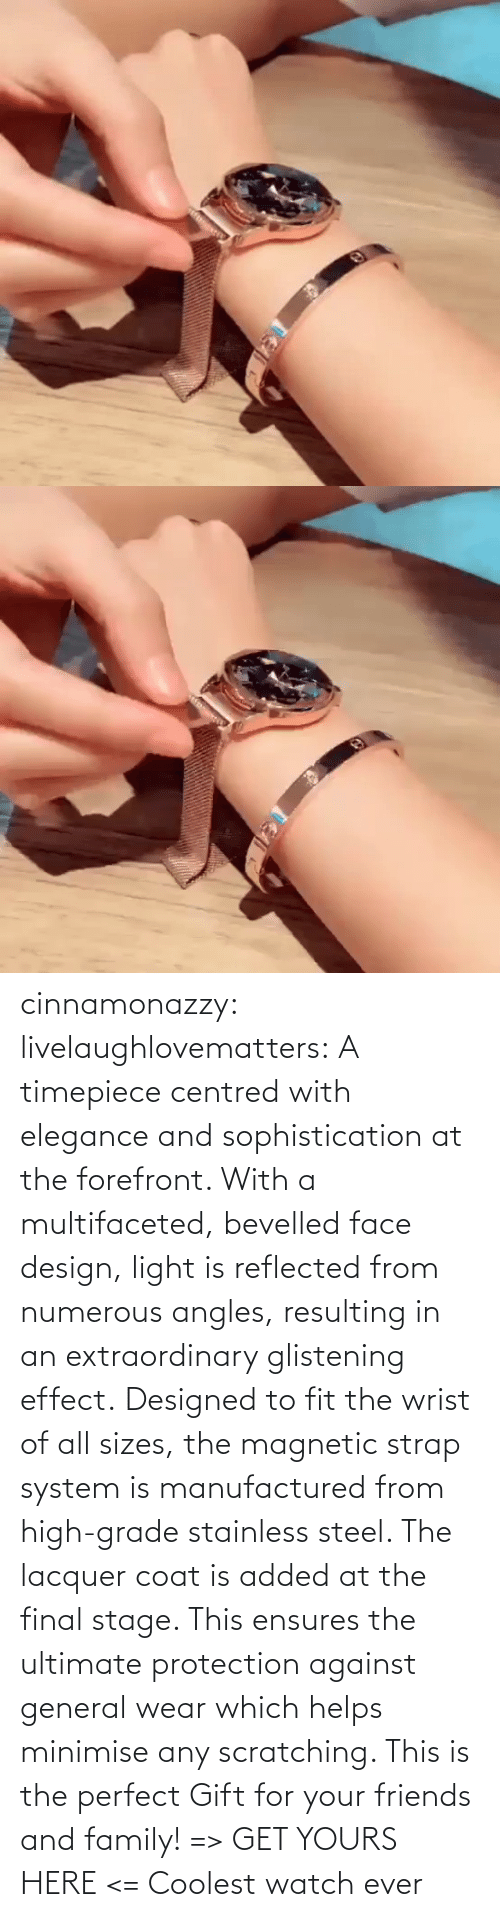 The Perfect: cinnamonazzy:  livelaughlovematters: A timepiece centred with elegance and sophistication at the forefront. With a multifaceted, bevelled face design, light is reflected from numerous angles, resulting in an extraordinary glistening effect. Designed to fit the wrist of all sizes, the magnetic strap system is manufactured from high-grade stainless steel. The lacquer coat is added at the final stage. This ensures the ultimate protection against general wear which helps minimise any scratching. This is the perfect Gift for your friends and family! => GET YOURS HERE <=    Coolest watch ever